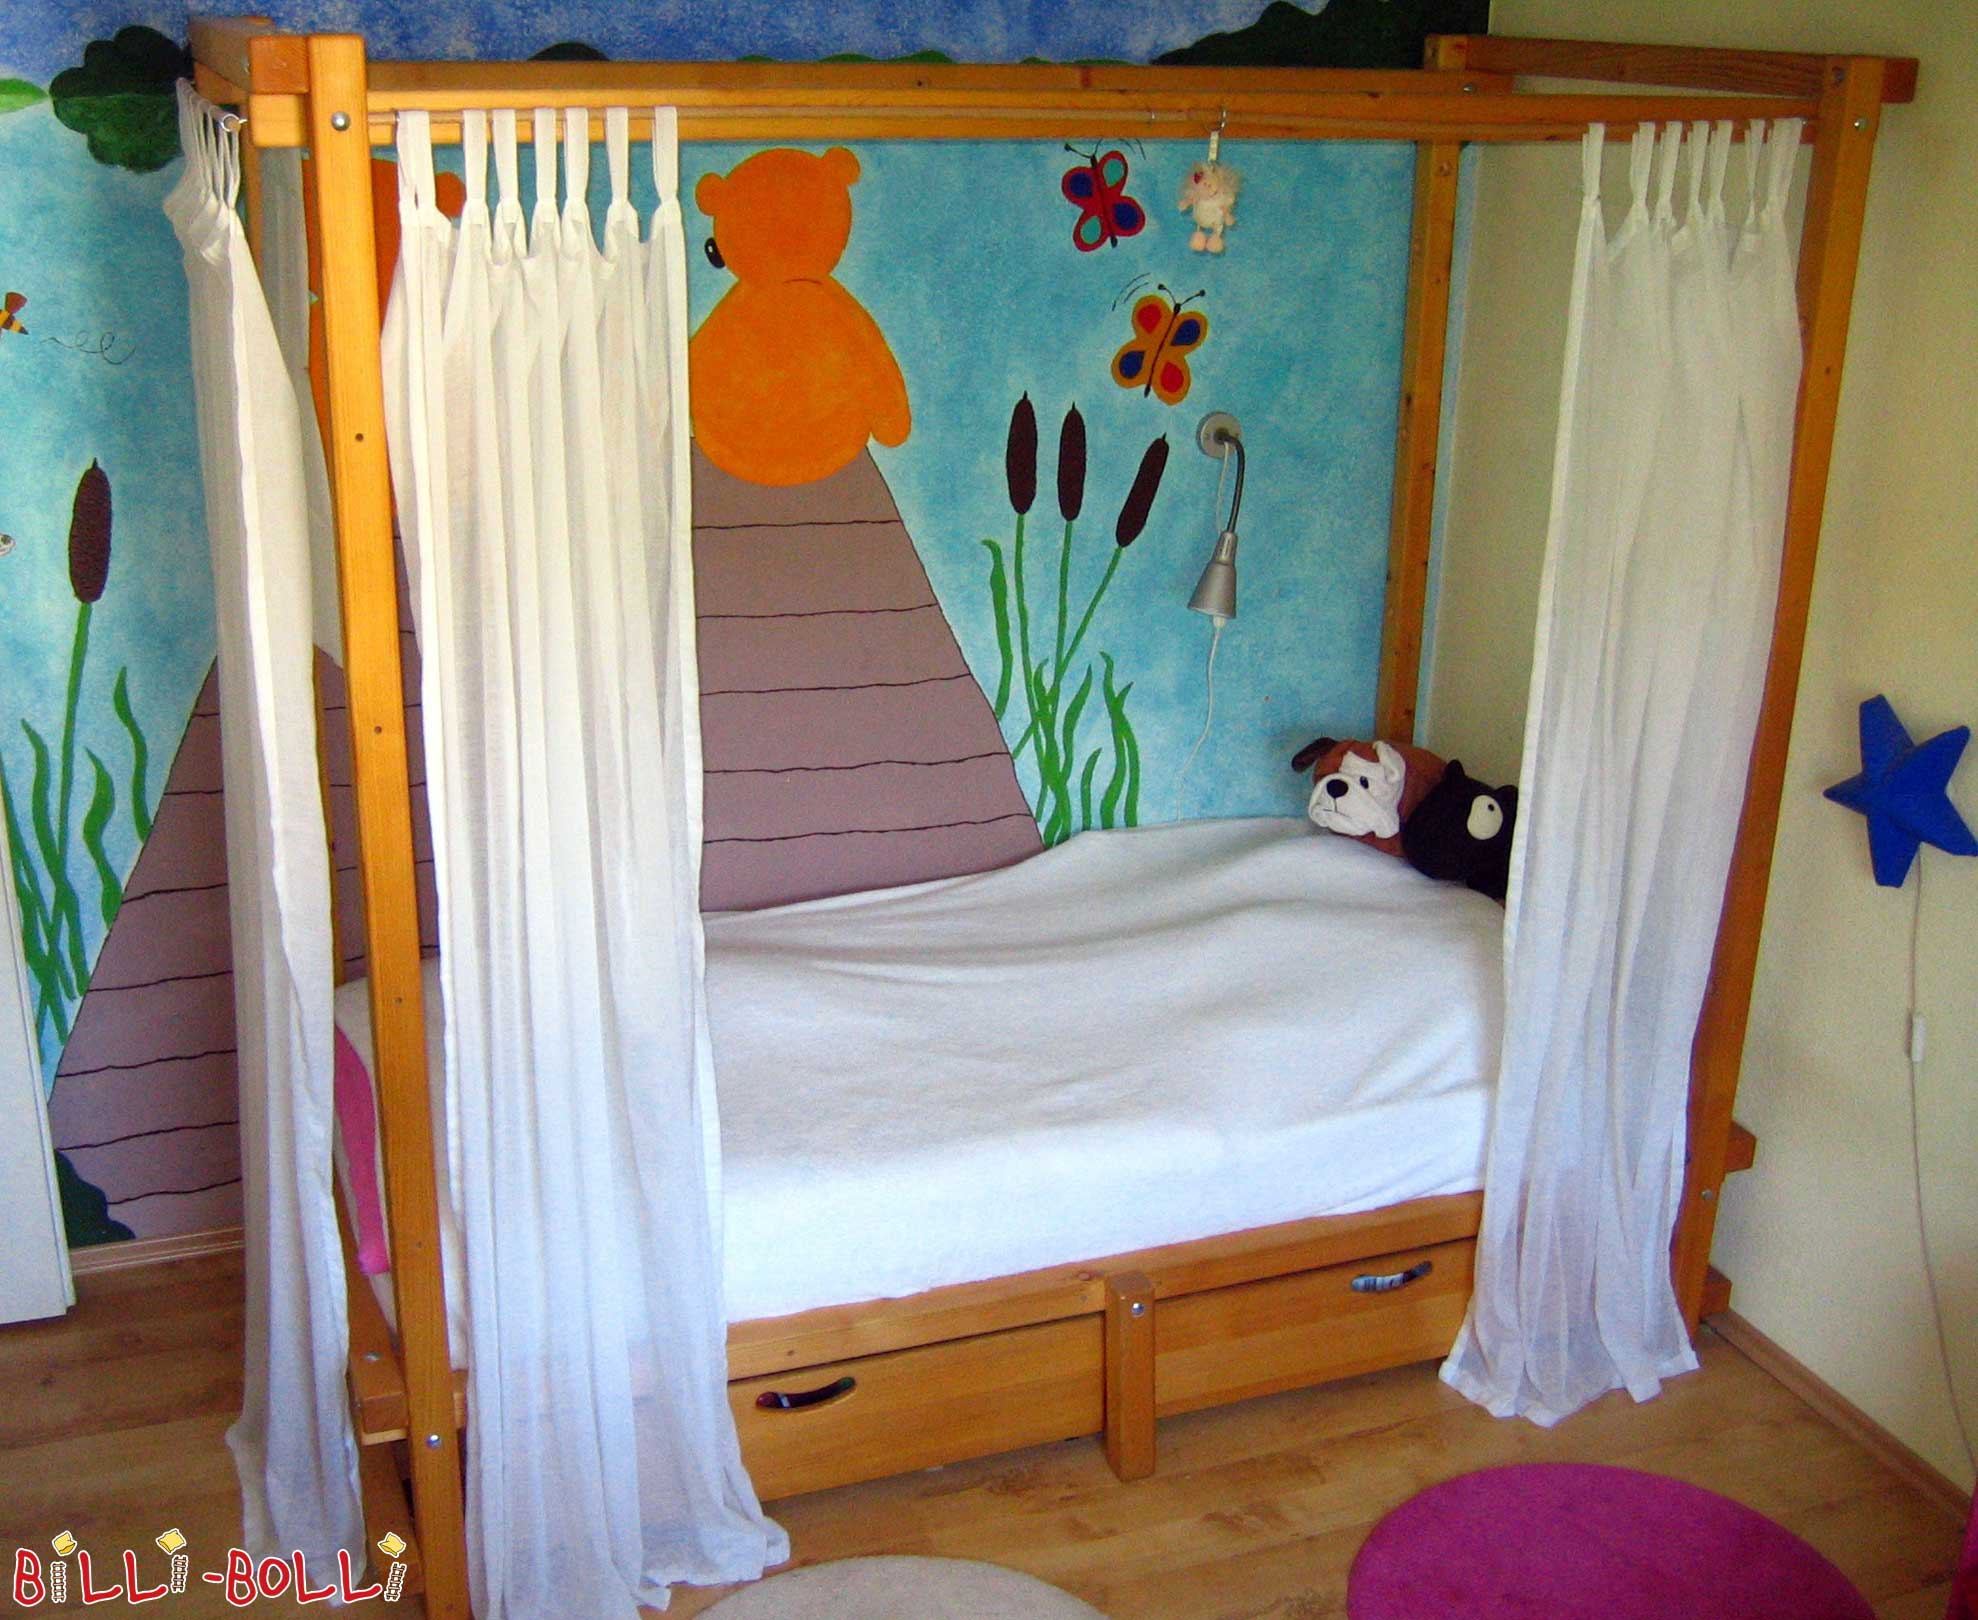 lit baldaquin meubles pour enfants billi bolli. Black Bedroom Furniture Sets. Home Design Ideas